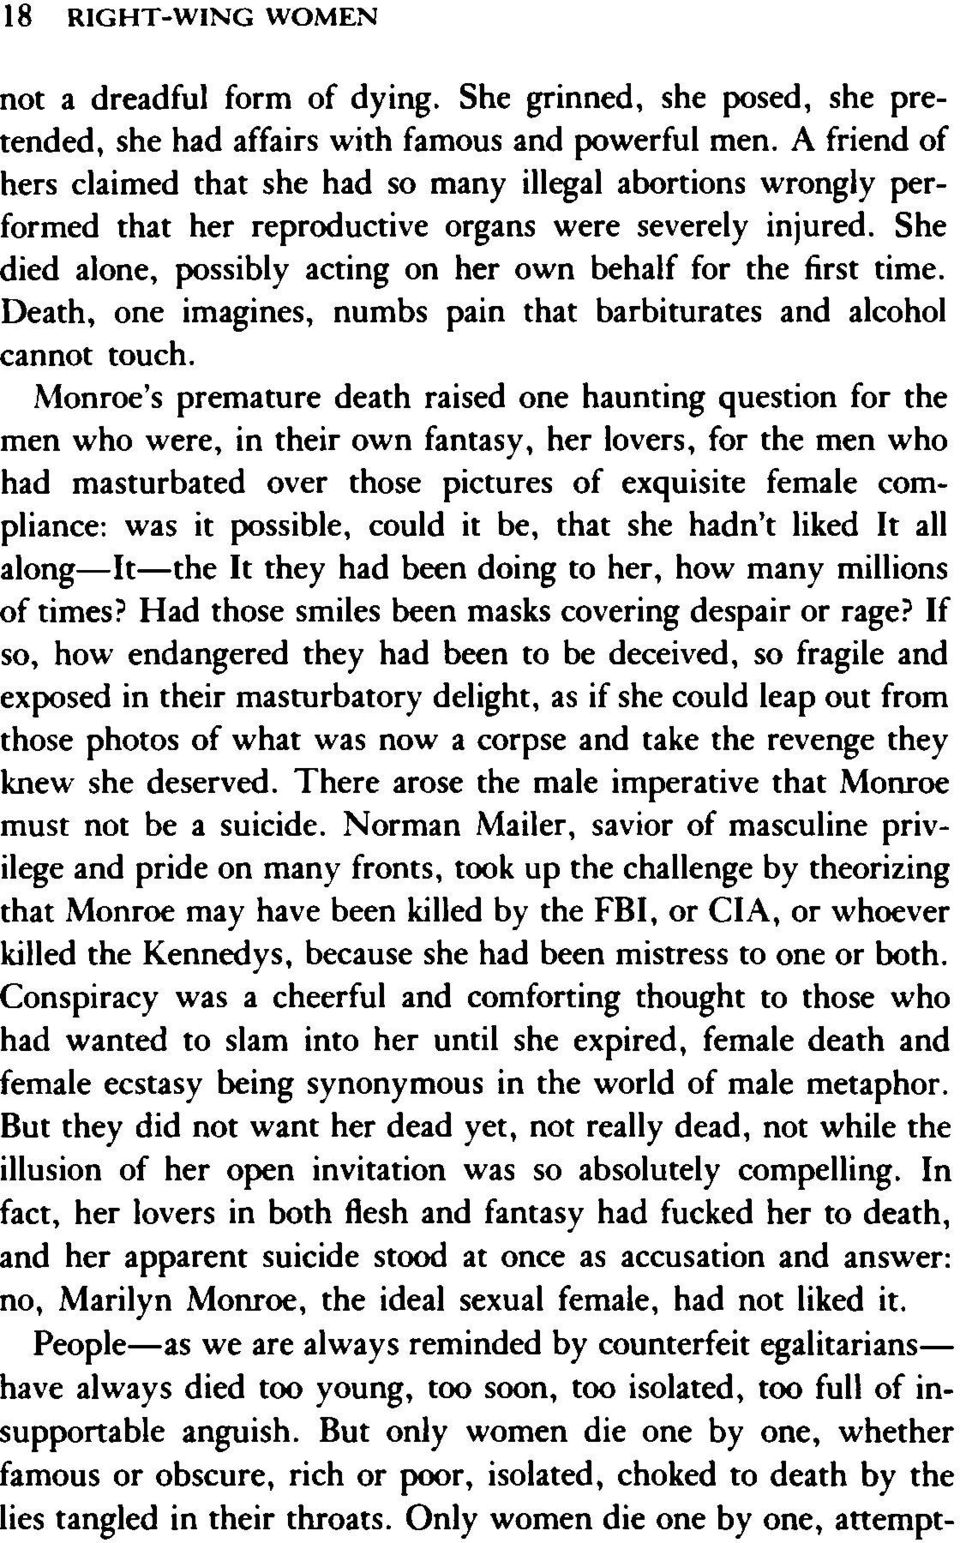 She died alone, possibly acting on her own behalf for the first time. Death, one imagines, numbs pain that barbiturates and alcohol cannot touch.